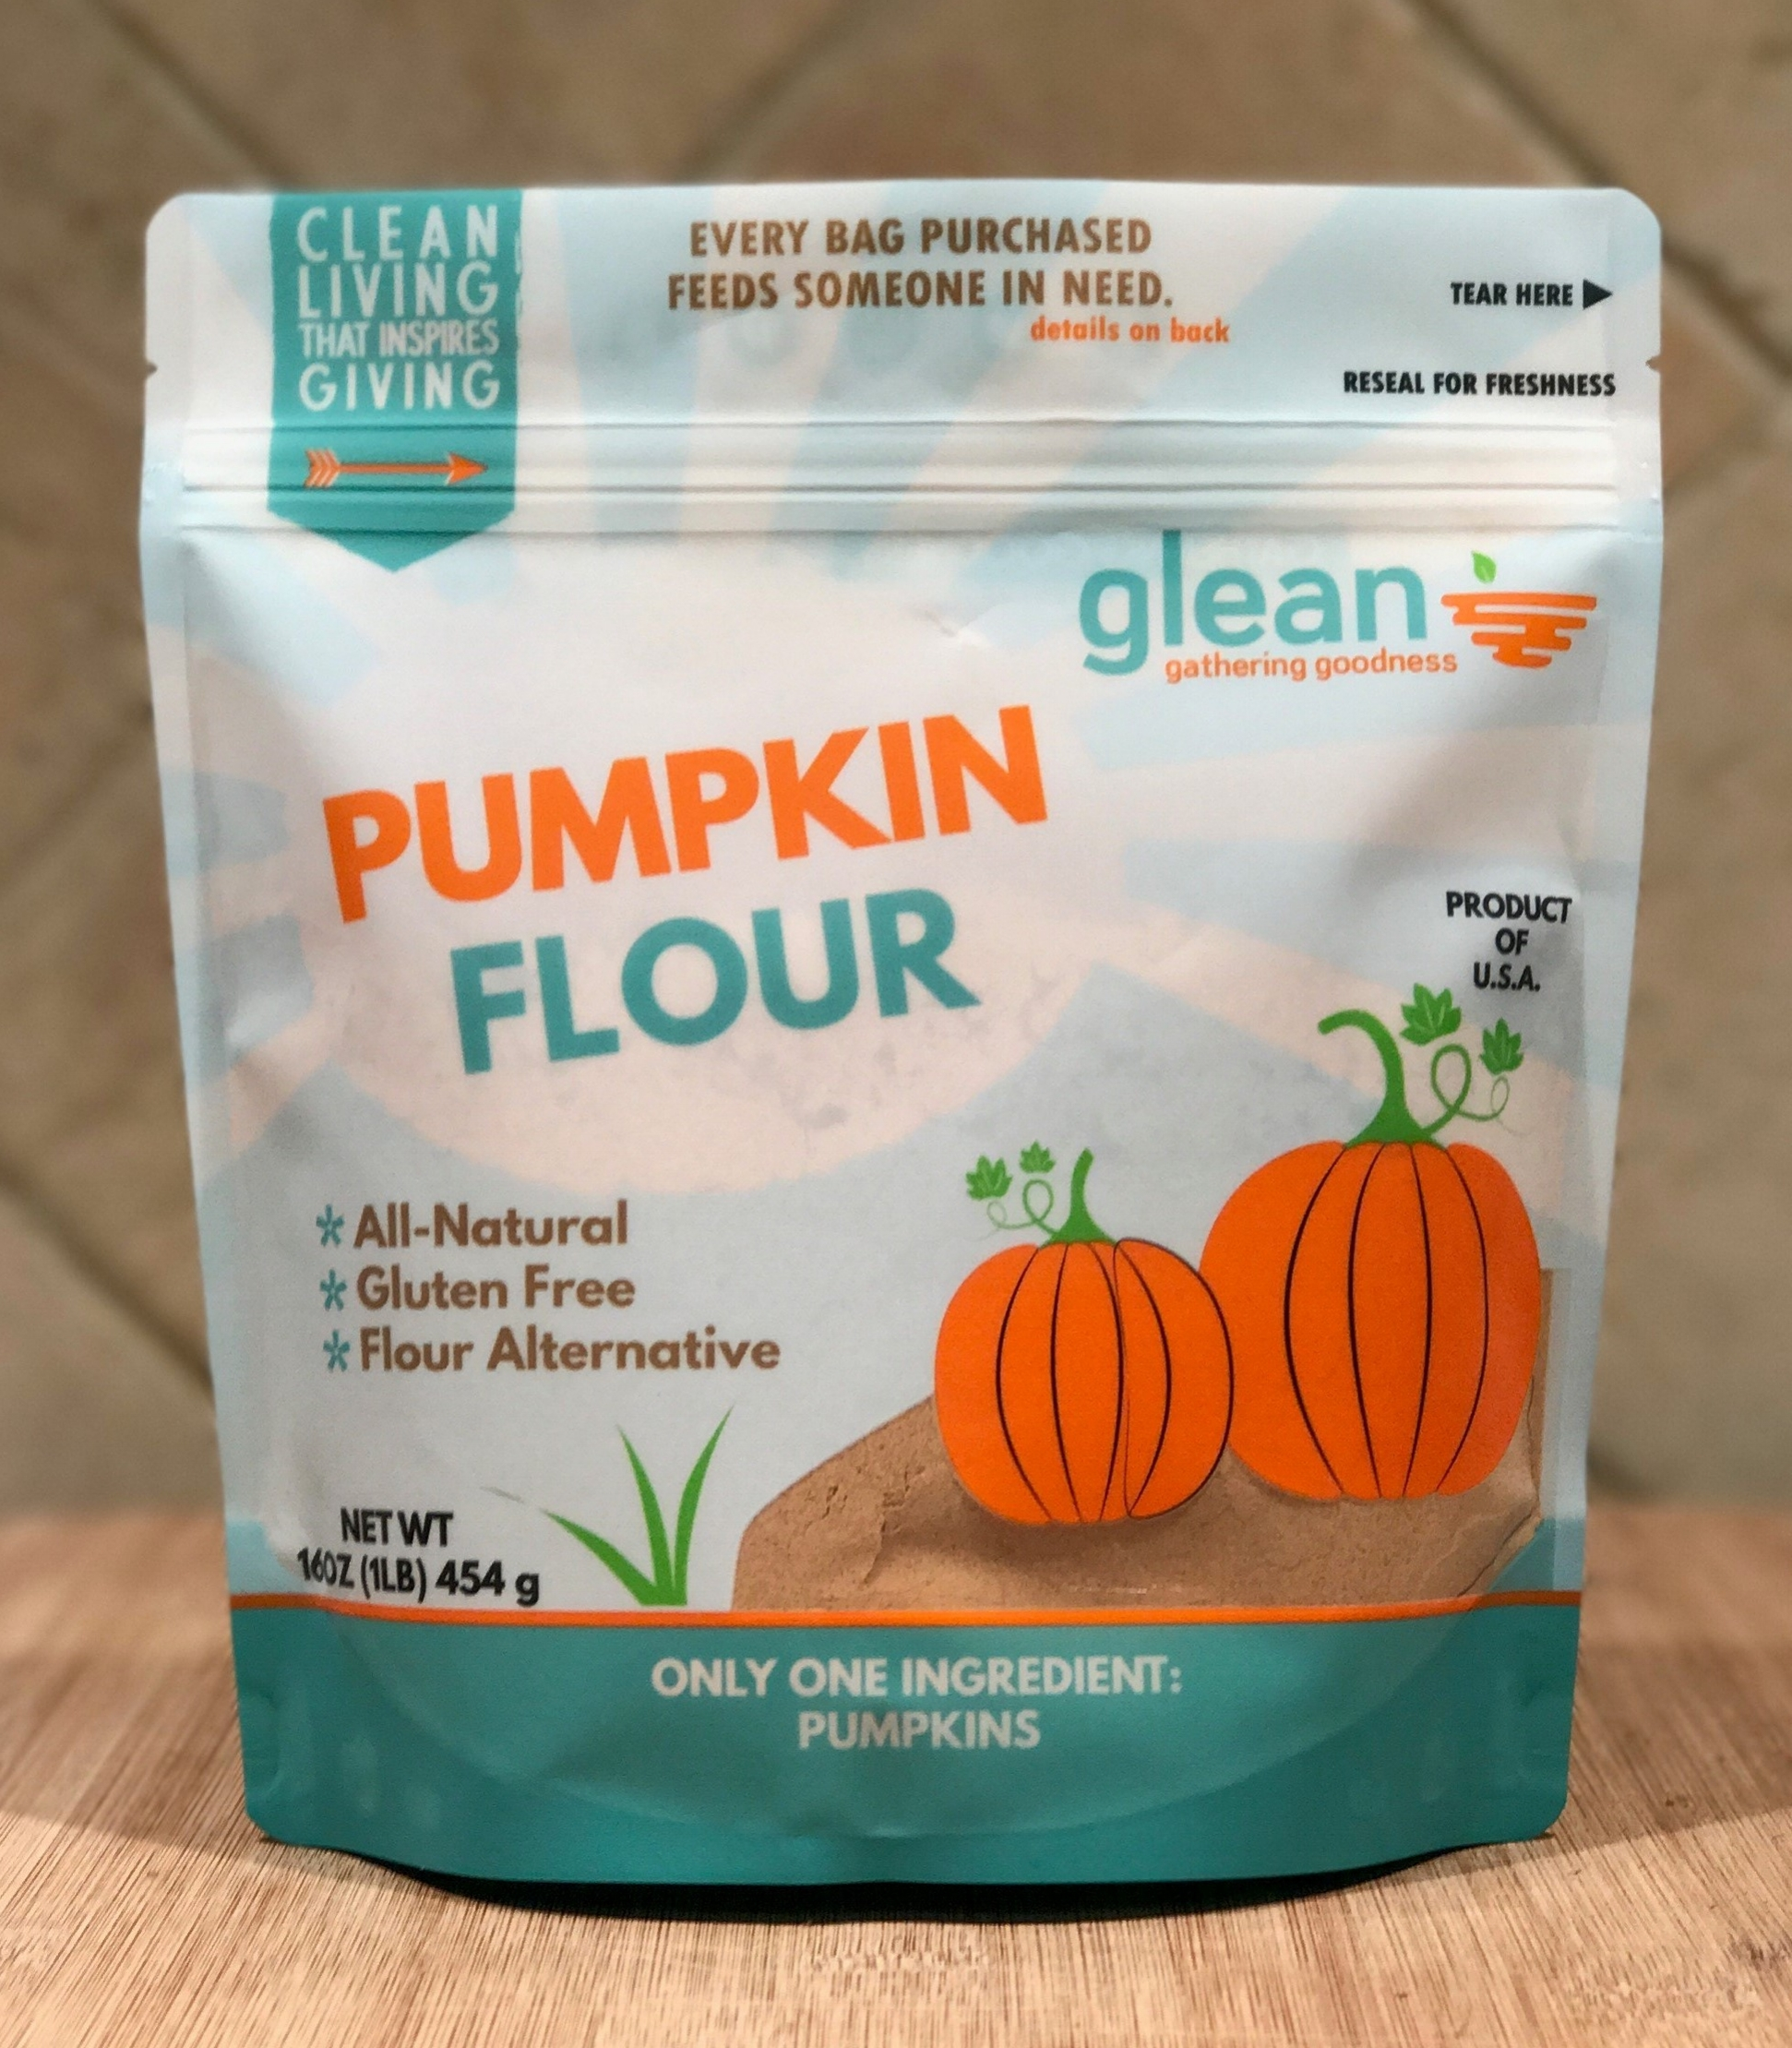 Pumpkin Flour sold by Live Glean. It is now available on Amazon and their website!